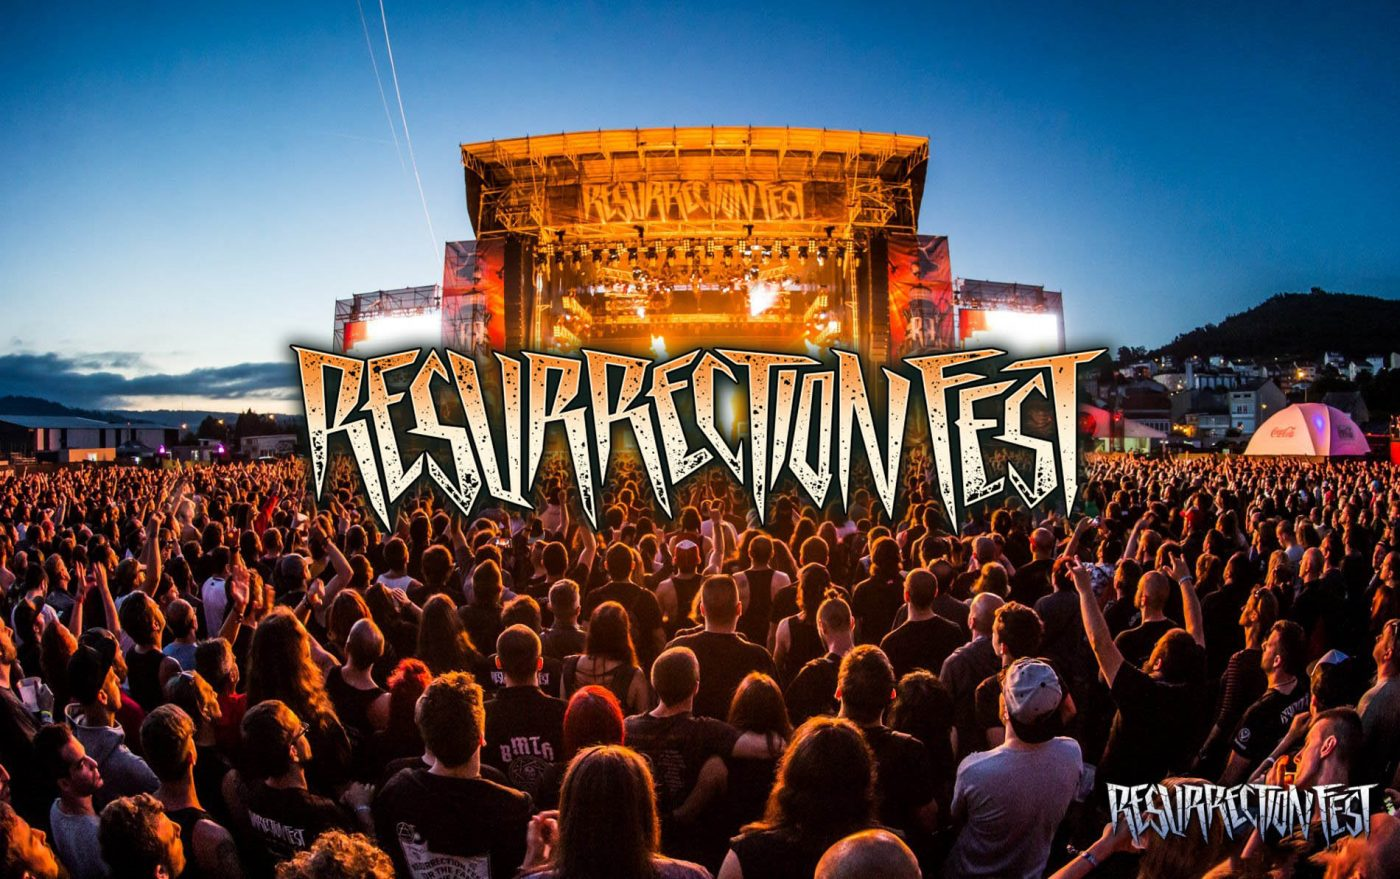 Първи имена в афиша на Resurrection fest 2020: System Of A Down, Korn, Judas Priest